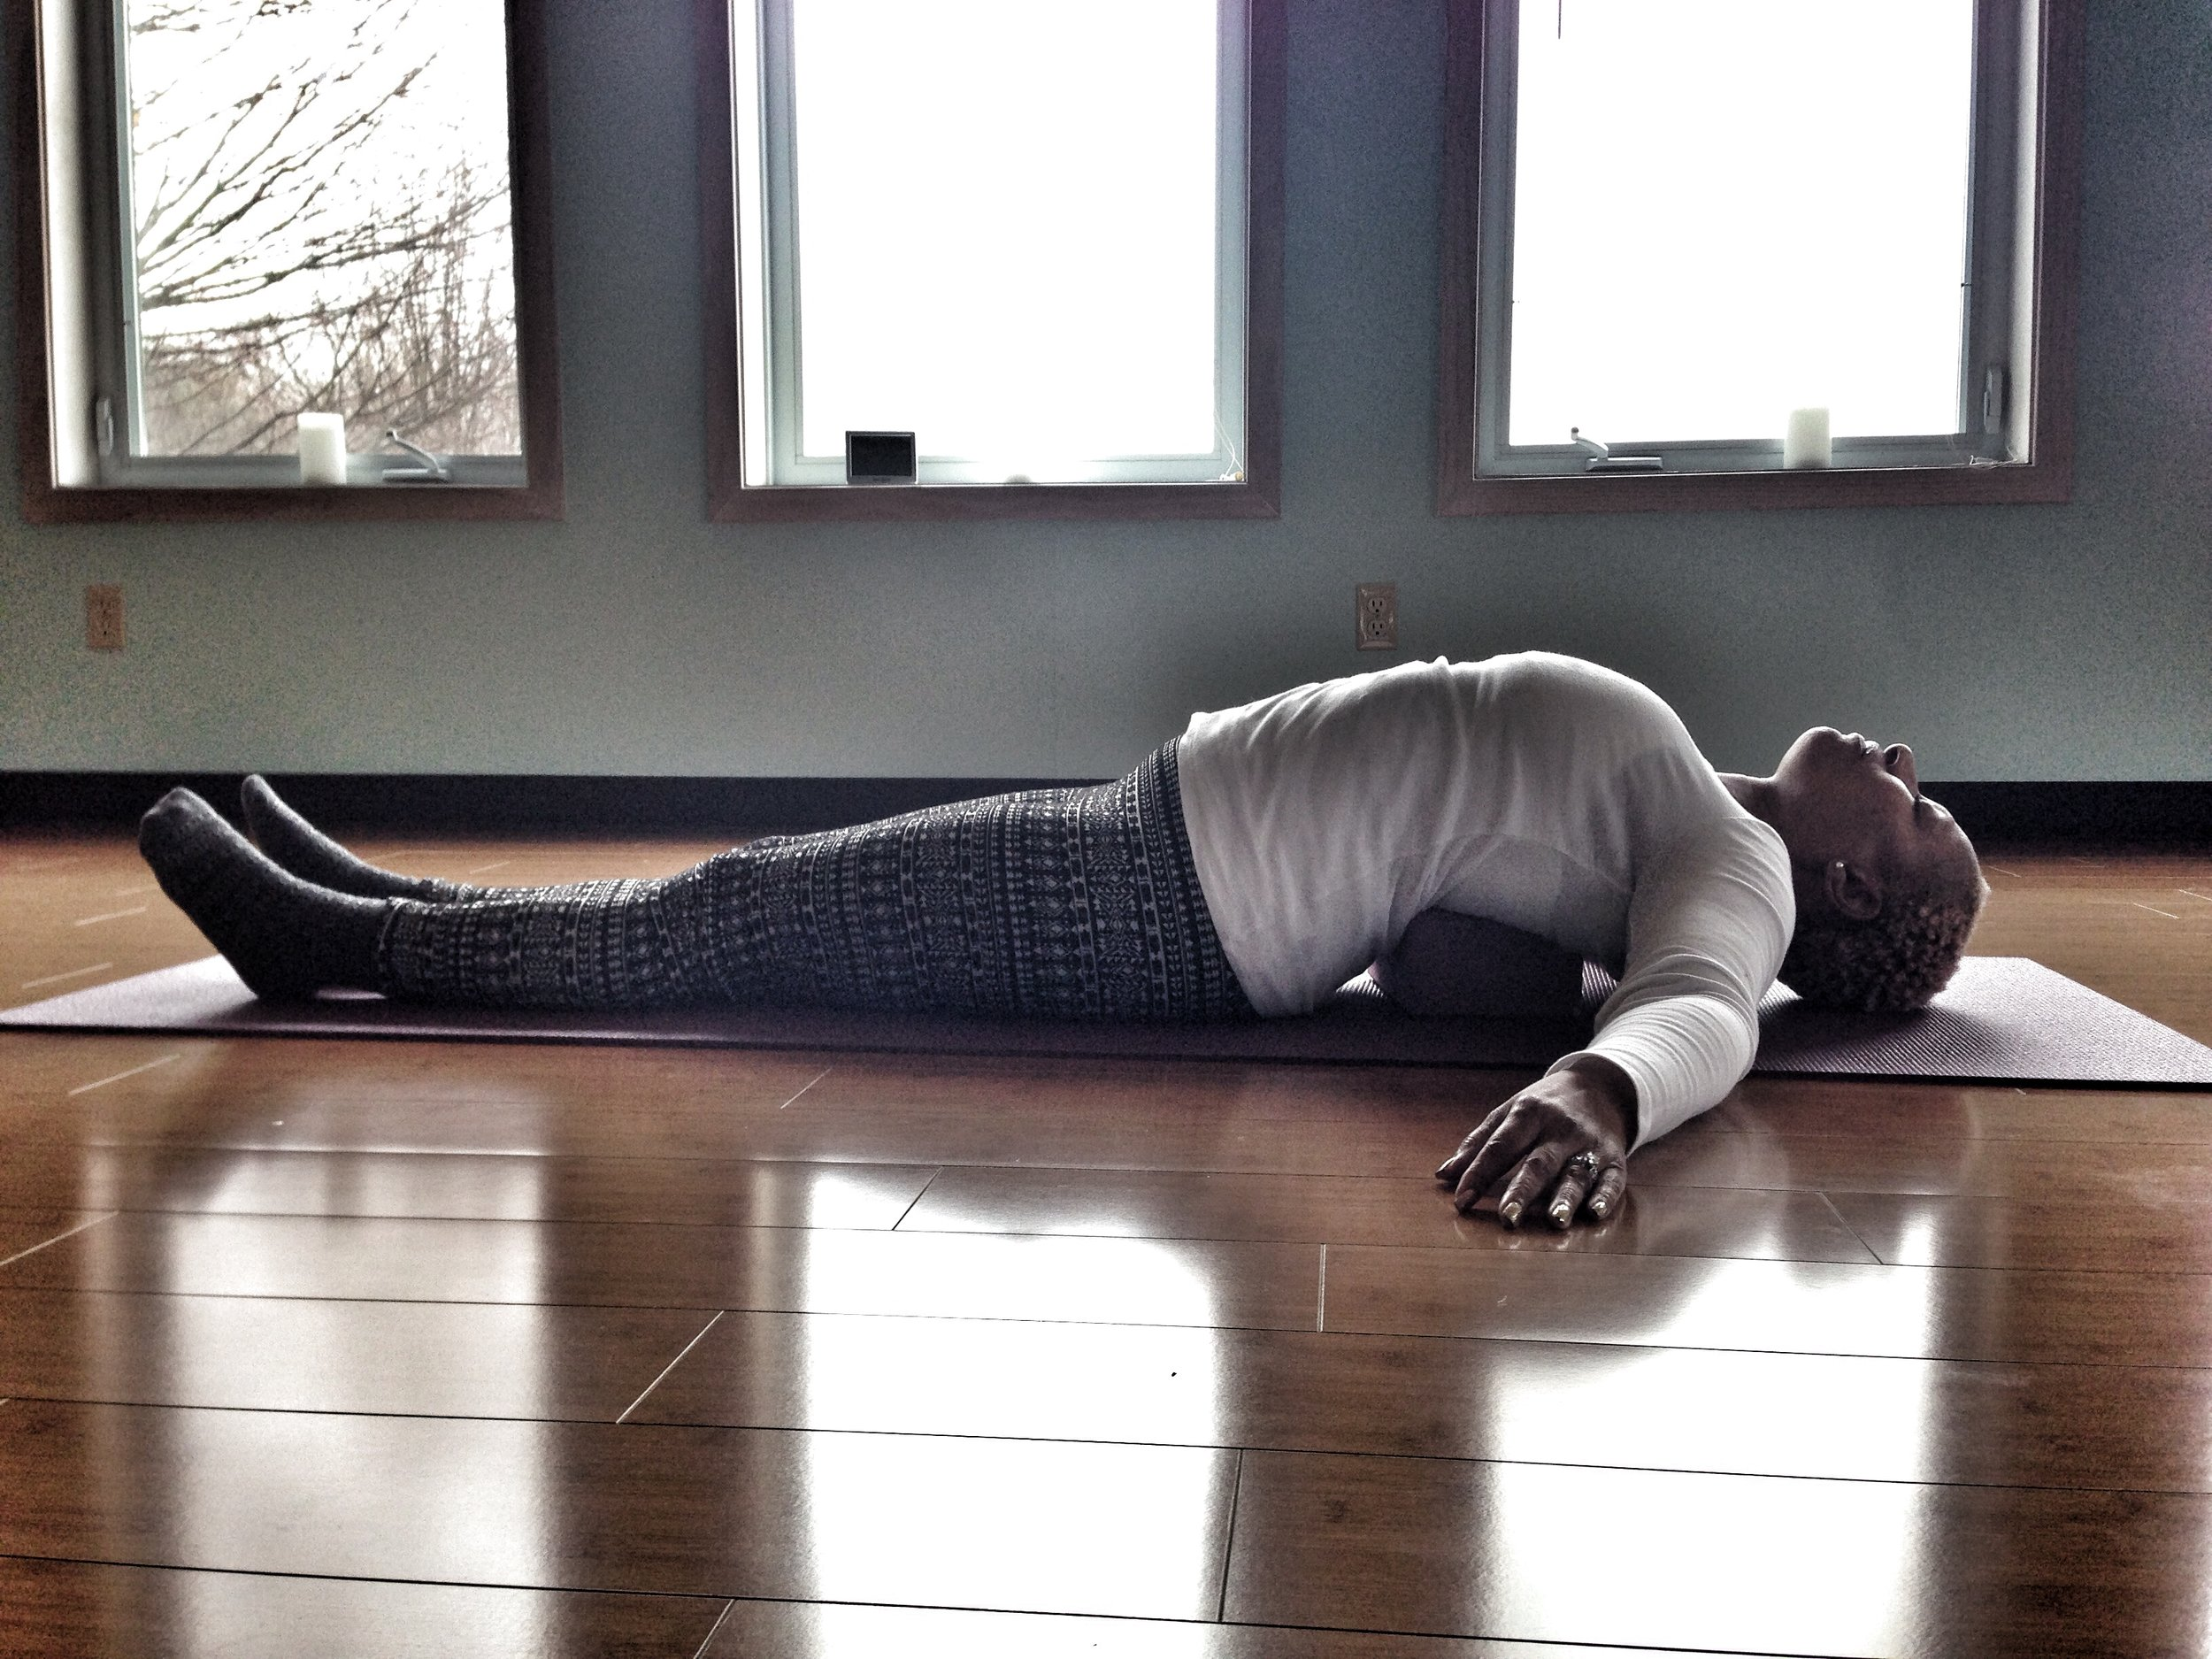 Here is Tanya doing one of her favorite poses, Supported Fish. A wonderful and soothing passive heart-opening posture. Perfect after a long afternoon crocheting or a day in hunched over a computer screen.